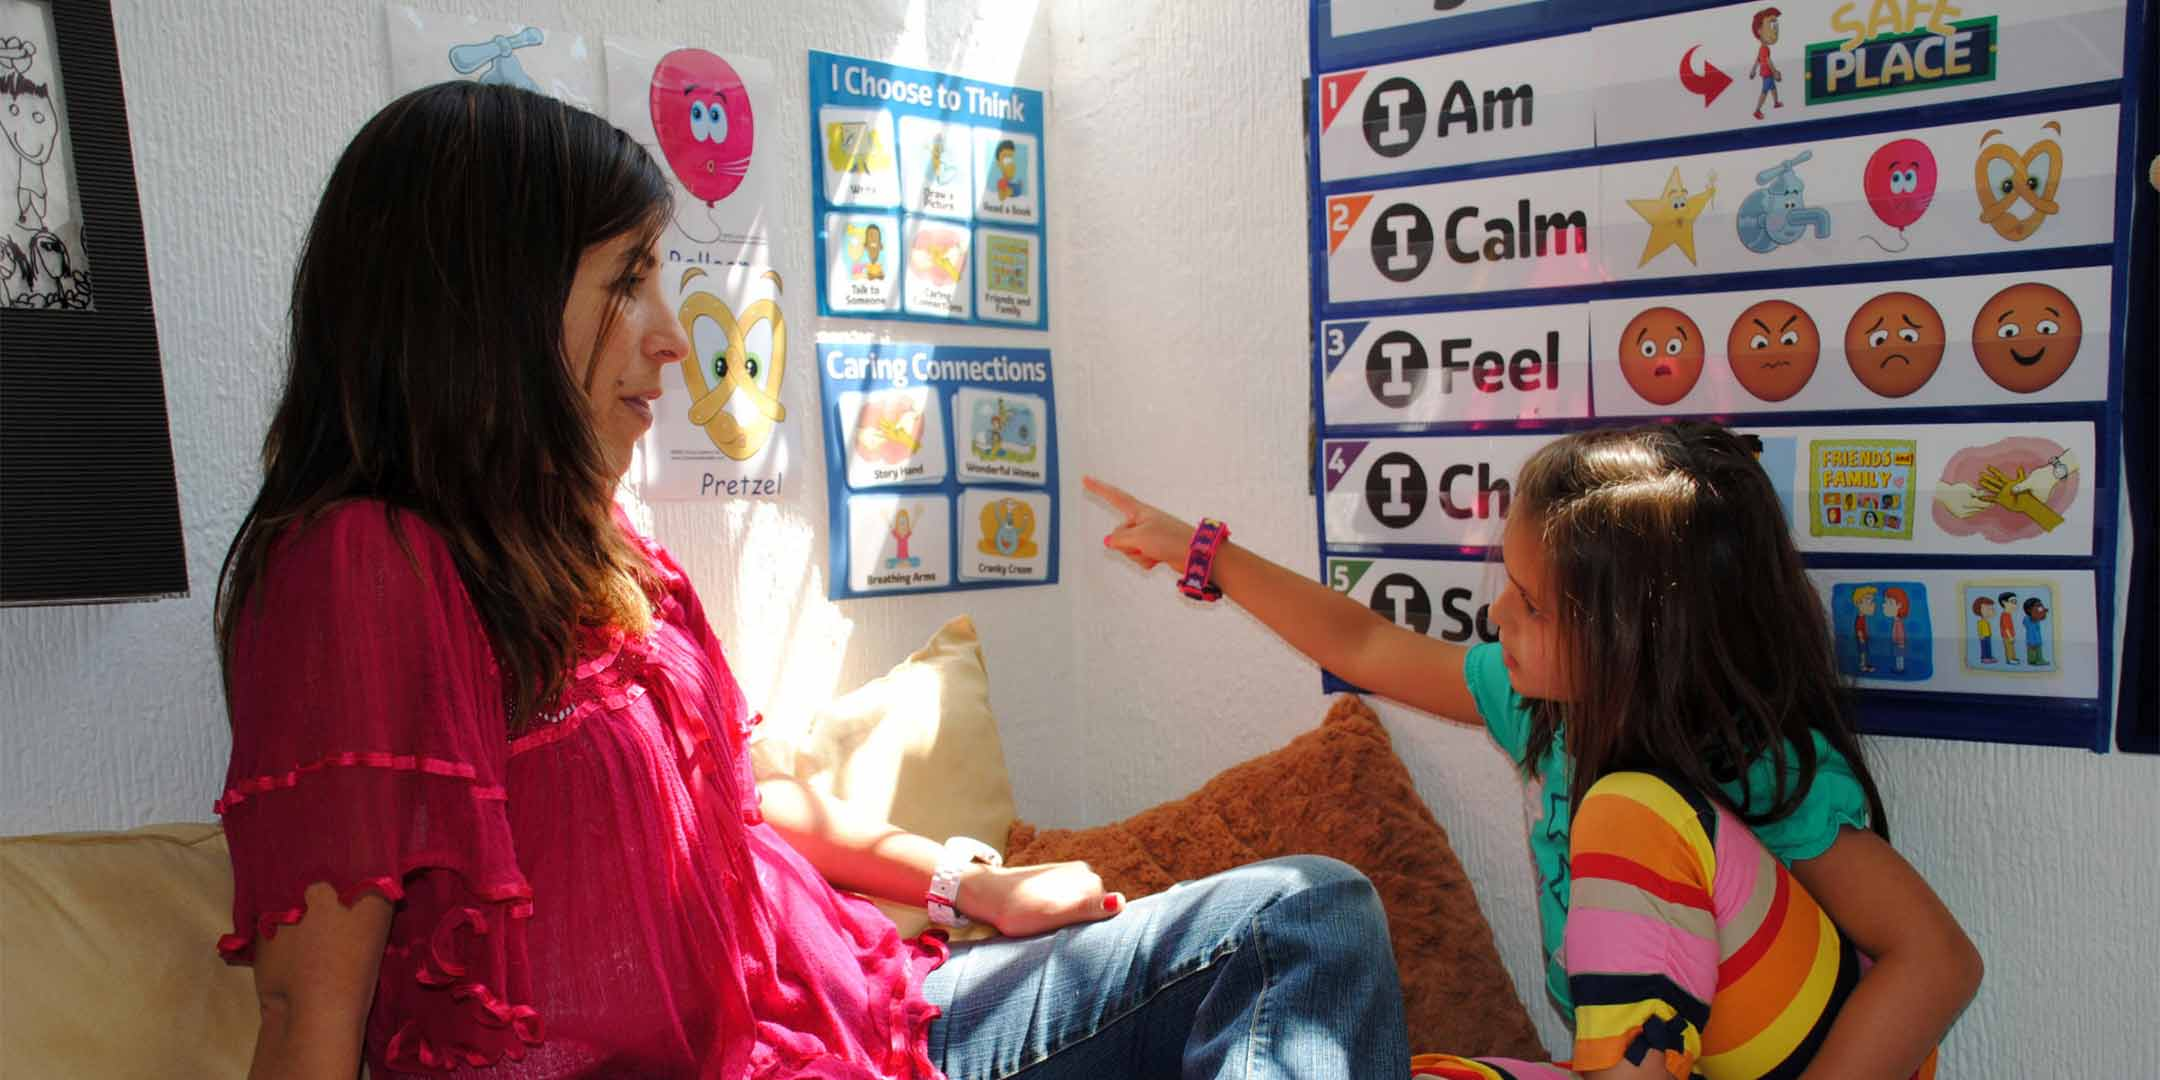 Help Kids Calm with a Portable Safe Place for Distance Learning banner